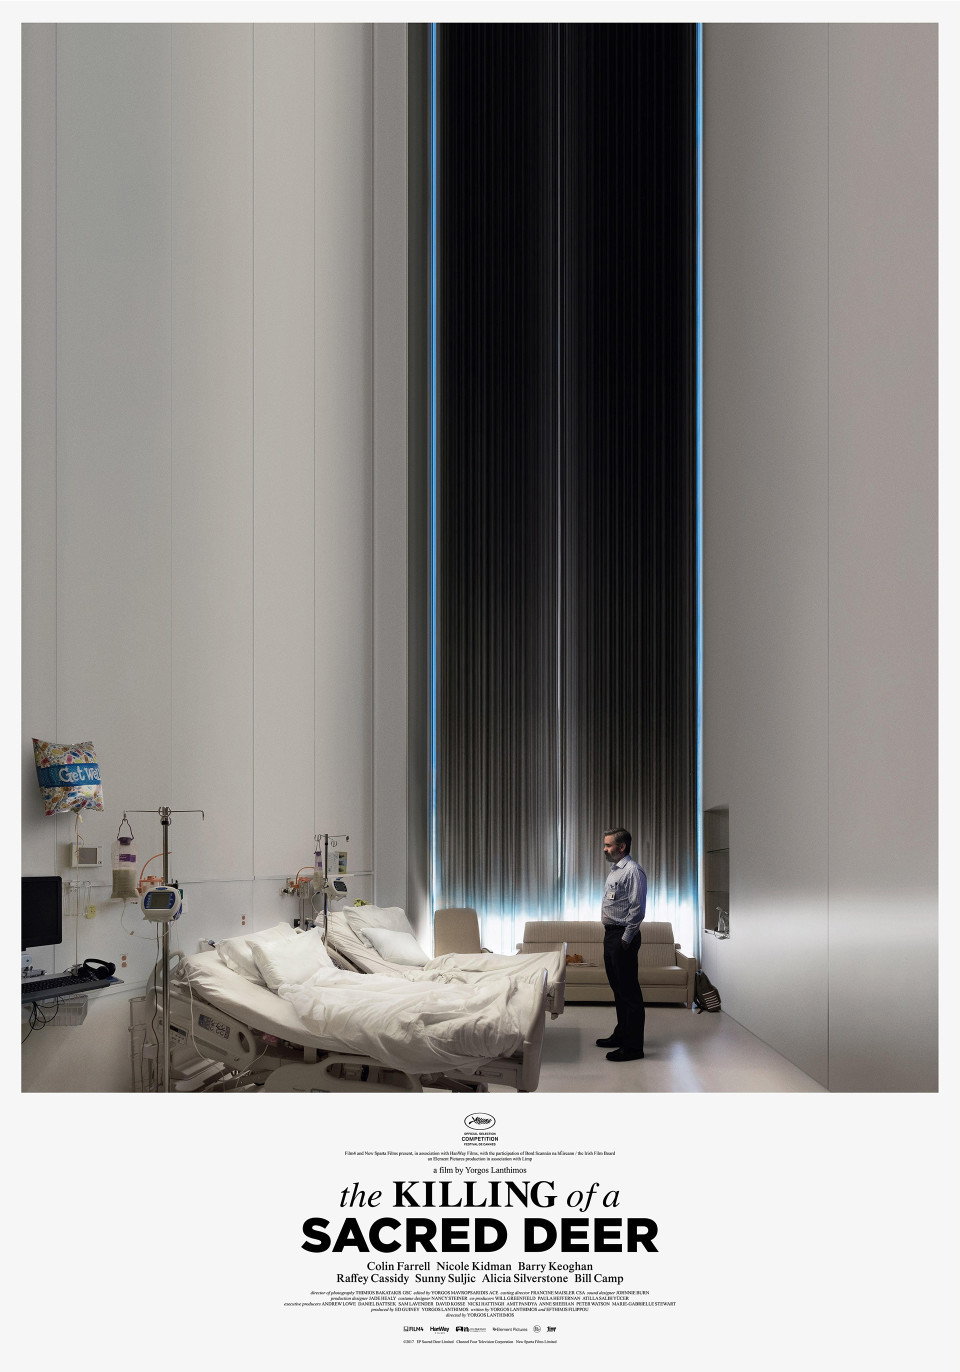 Killing of a Sacred Deer. - Director: Yorgos LanthimosMusic Supervision: SixtyFour MusicSynopsis: Dr. Steven Murphy is a renowned cardiovascular surgeon who presides over a spotless household with his wife and two children. Lurking at the margins of his idyllic suburban existence is Martin, a fatherless teen who insinuates himself into the doctor's life in gradually unsettling ways. Soon, the full scope of Martin's intent becomes menacingly clear when he confronts Steven with a long-forgotten transgression that will shatter his domestic bliss forever.Cannes Film Festival 2017 Winner: Best ScreenplayCannes Film Festival 2017 Nominee: Palme d'Or